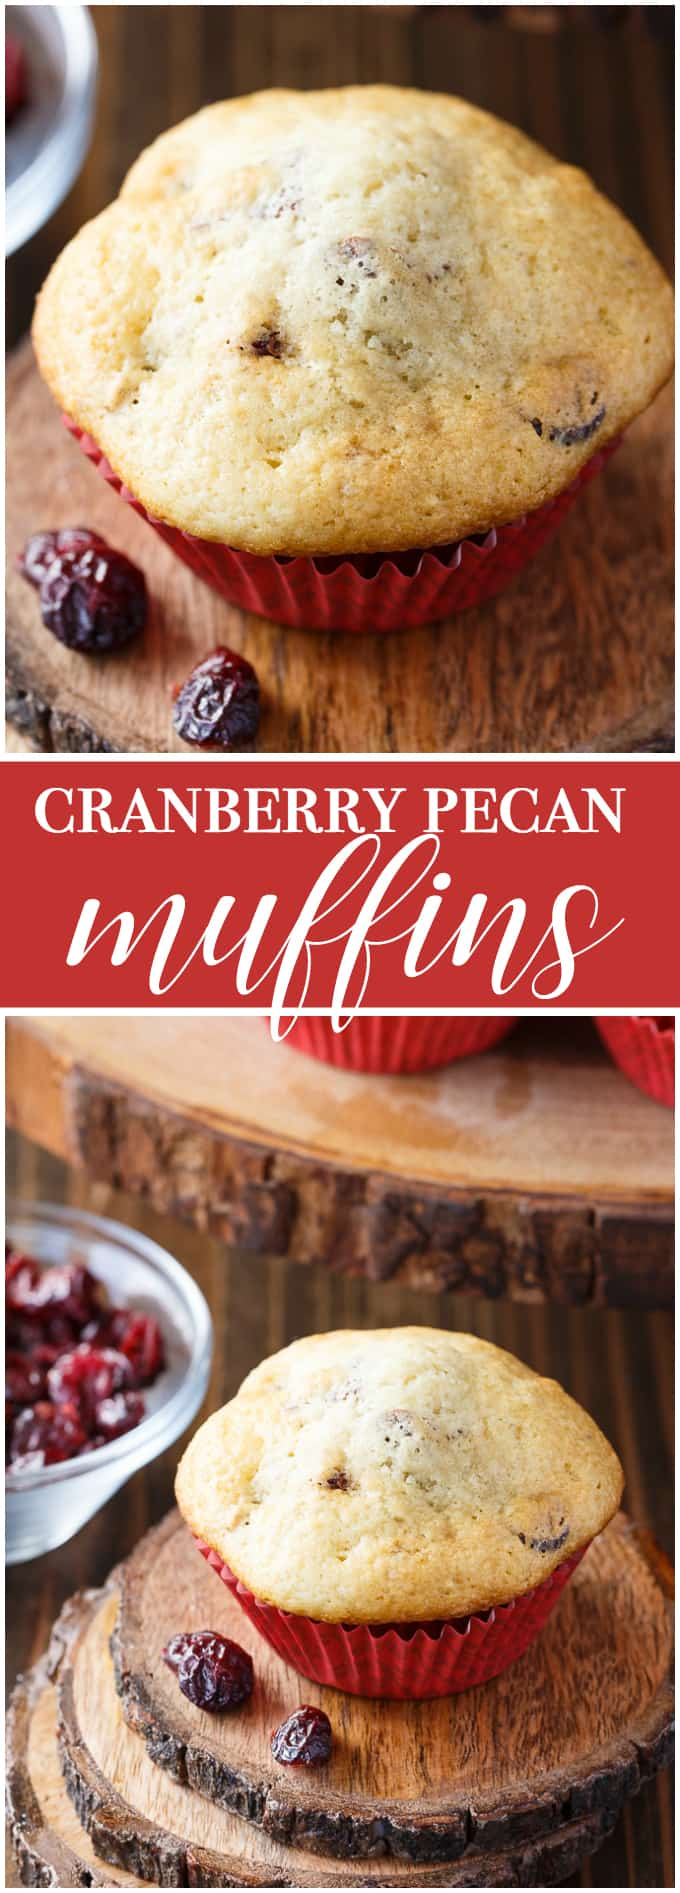 Cranberry Pecan Muffins - The best holiday breakfast! Whip these up for Thanksgiving or Christmas morning.